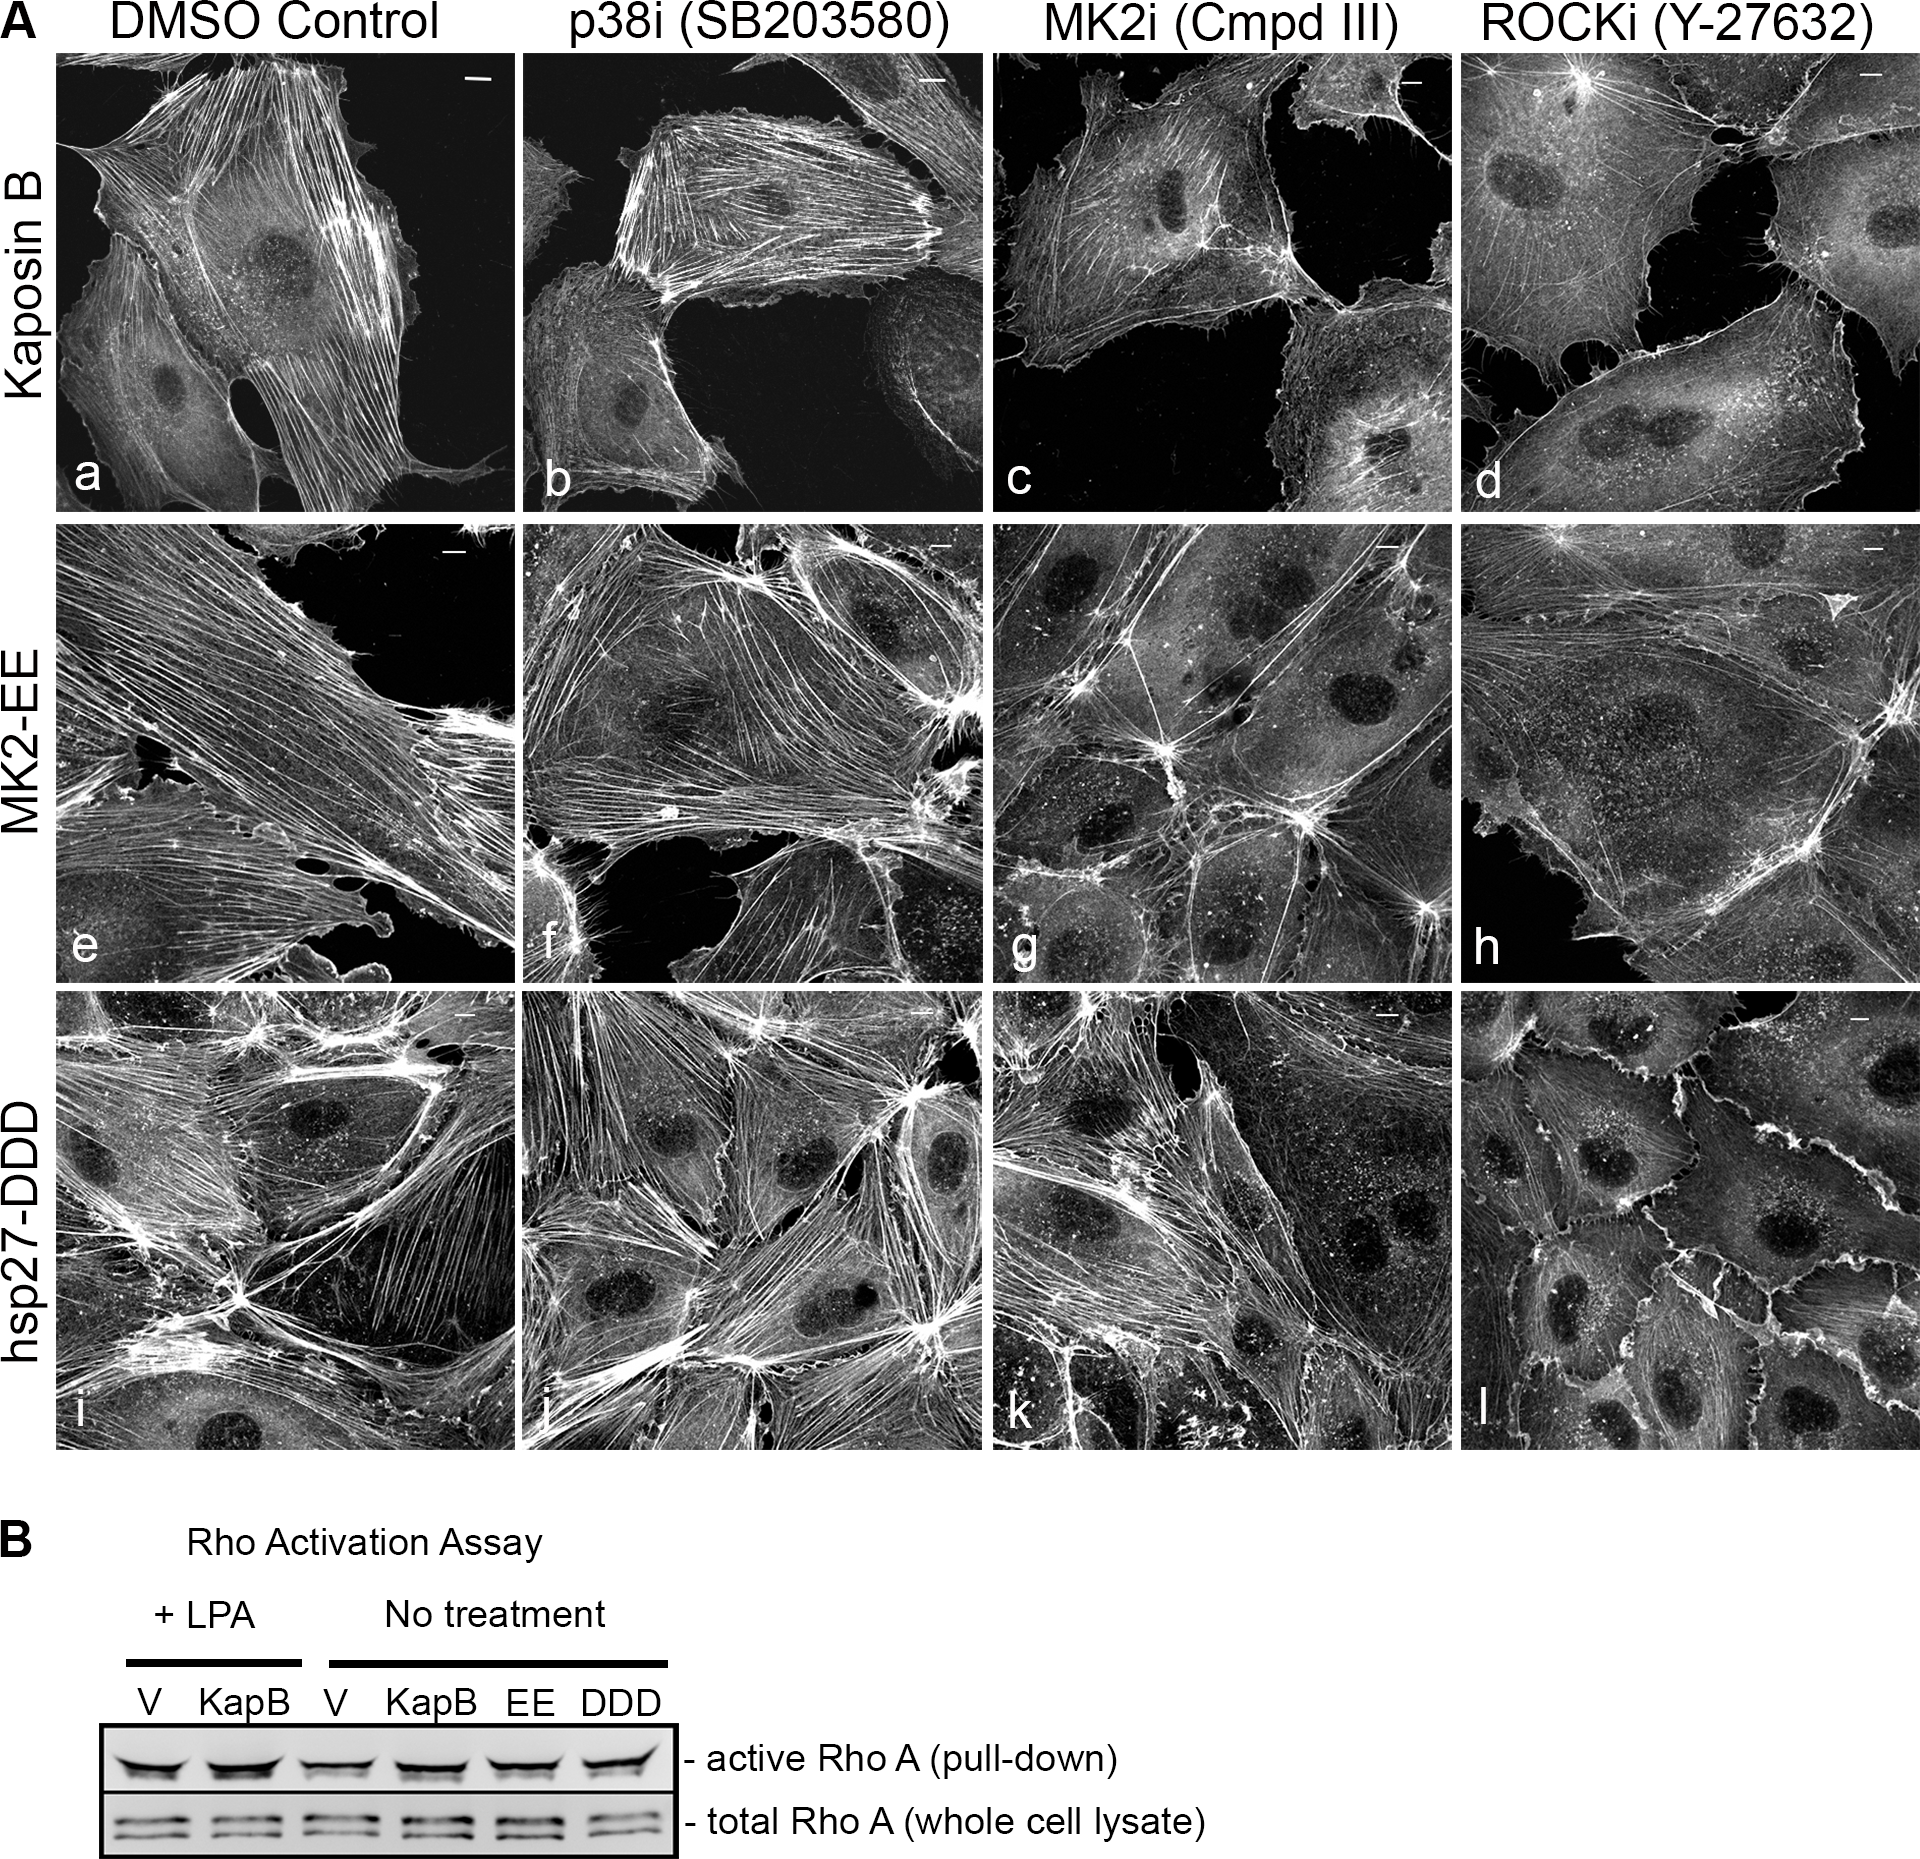 KapB requires the kinase MK2 and RhoA-GTPase to induce actin stress fibers in primary endothelial cells.